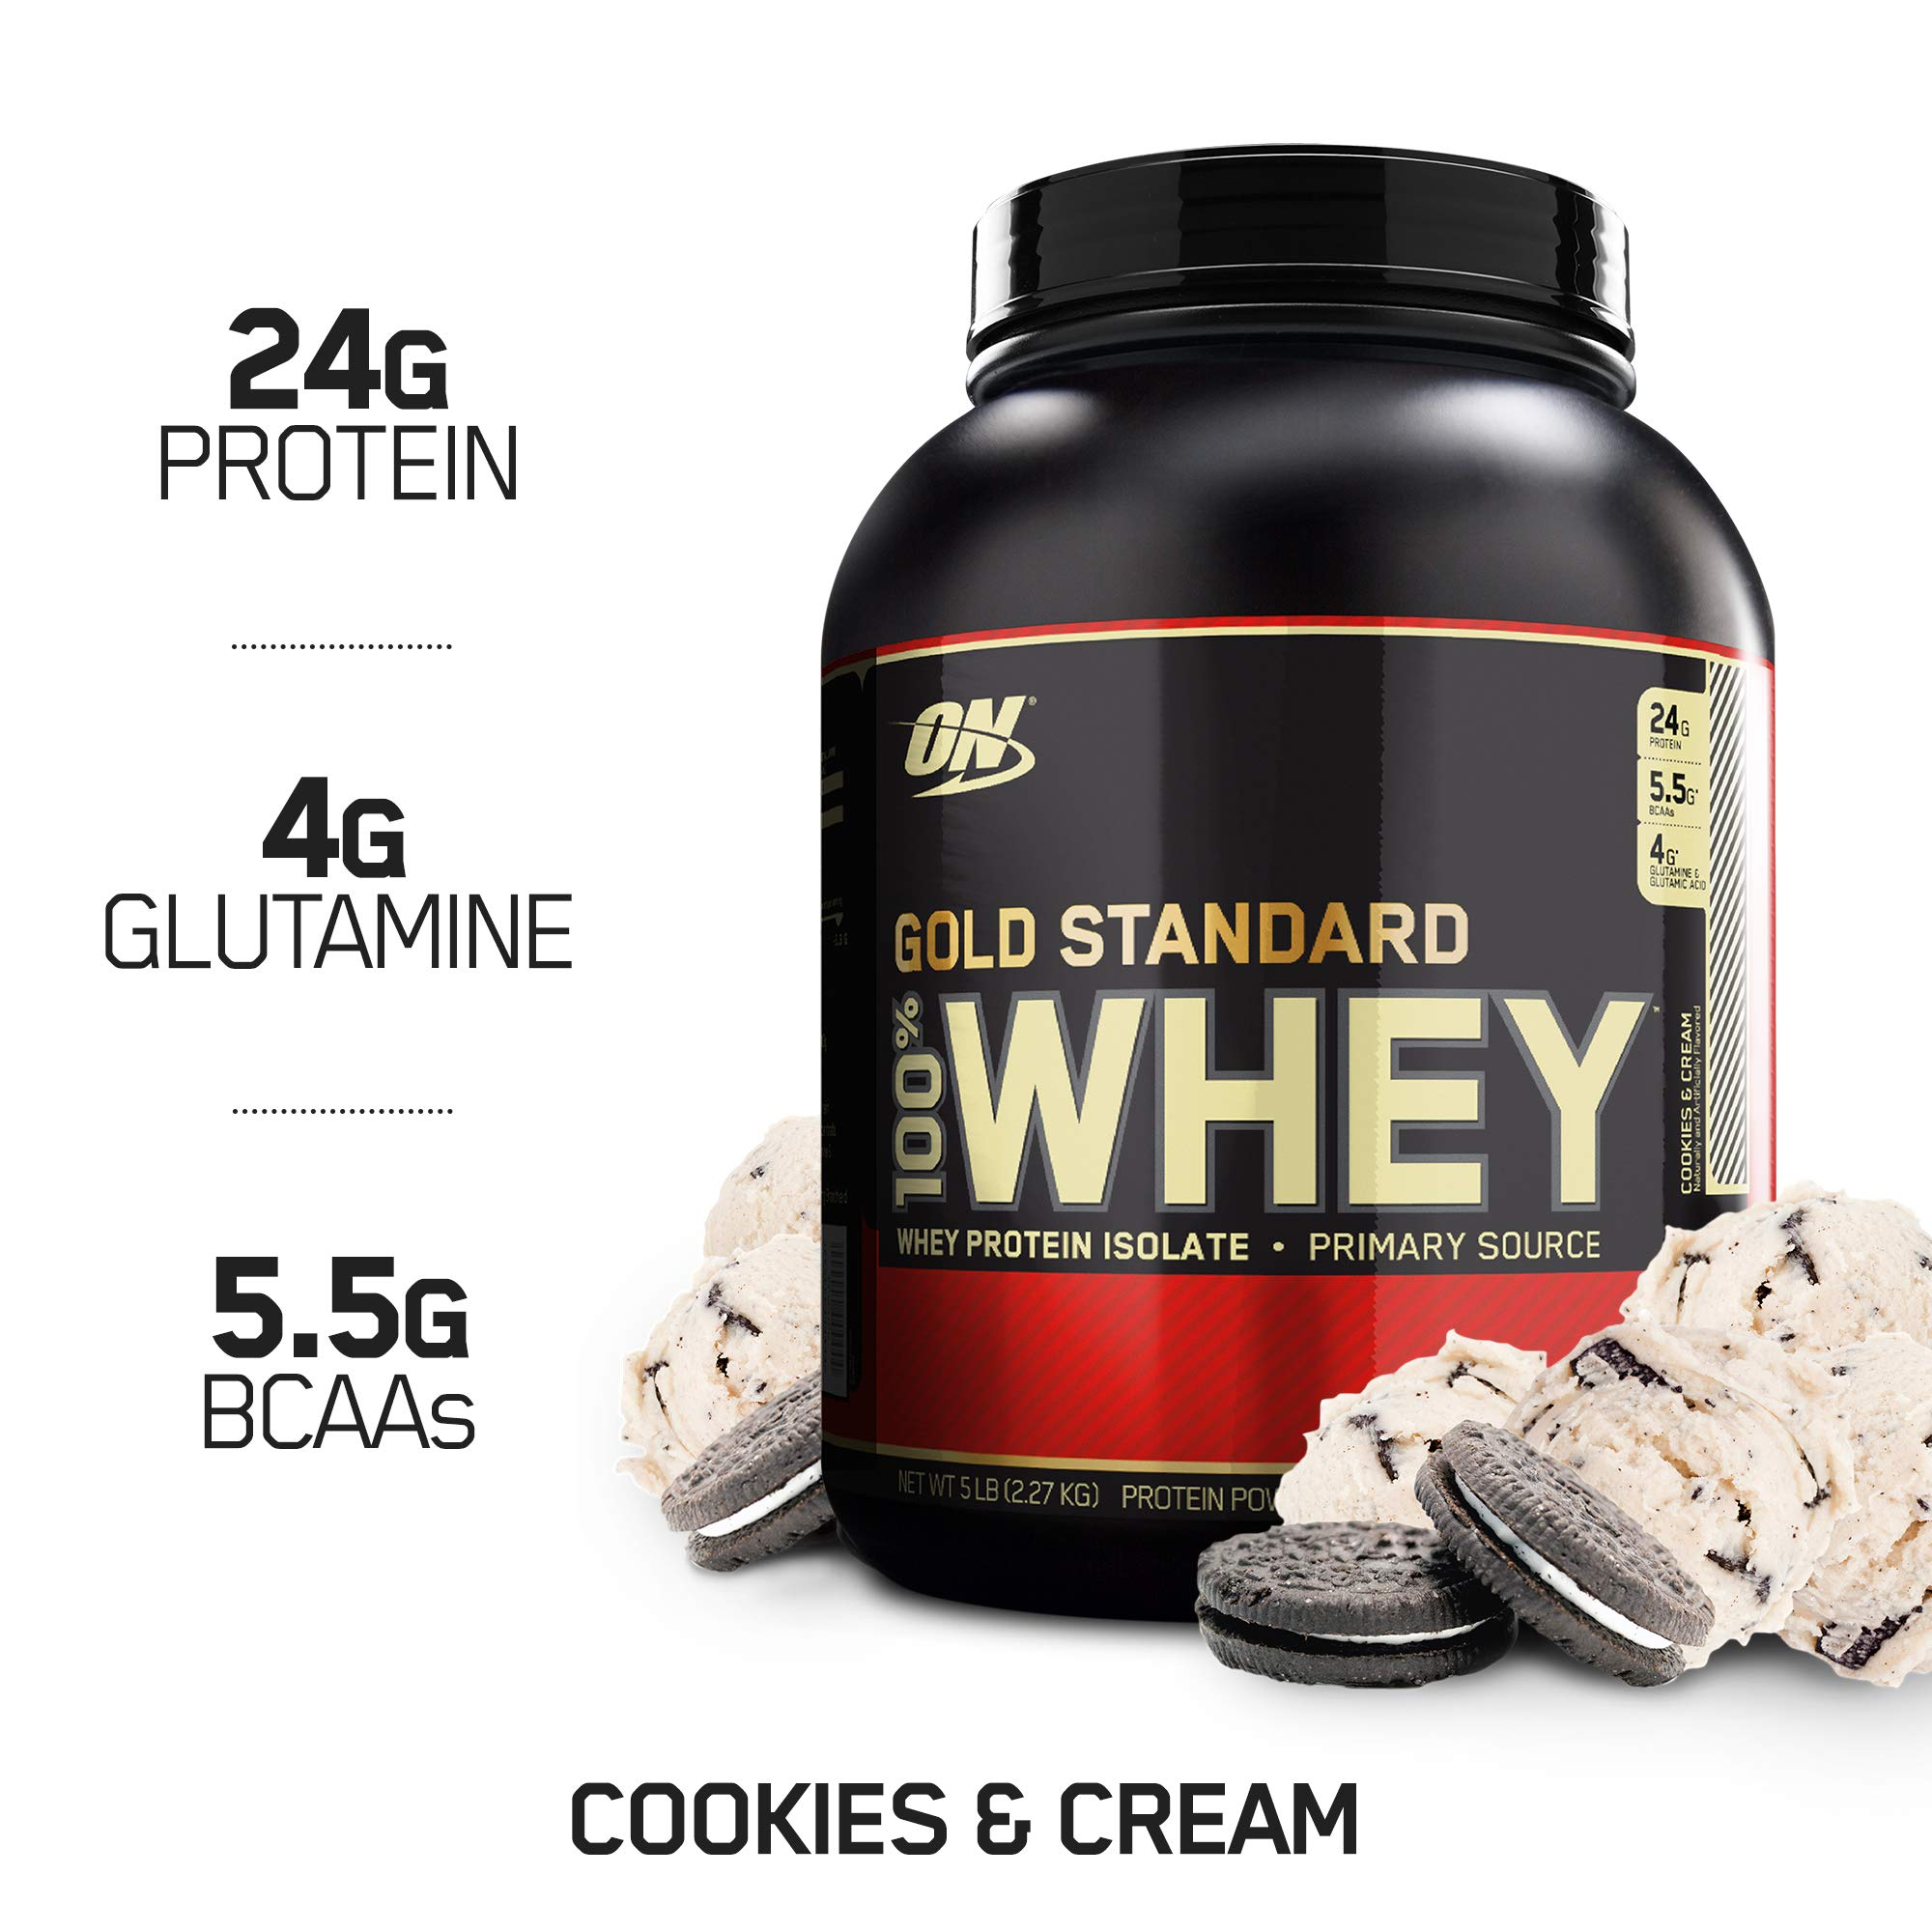 OPTIMUM NUTRITION GOLD STANDARD 100% Whey Protein Powder, Cookies and Cream, 4.63 Pound (Package May Vary) by Optimum Nutrition